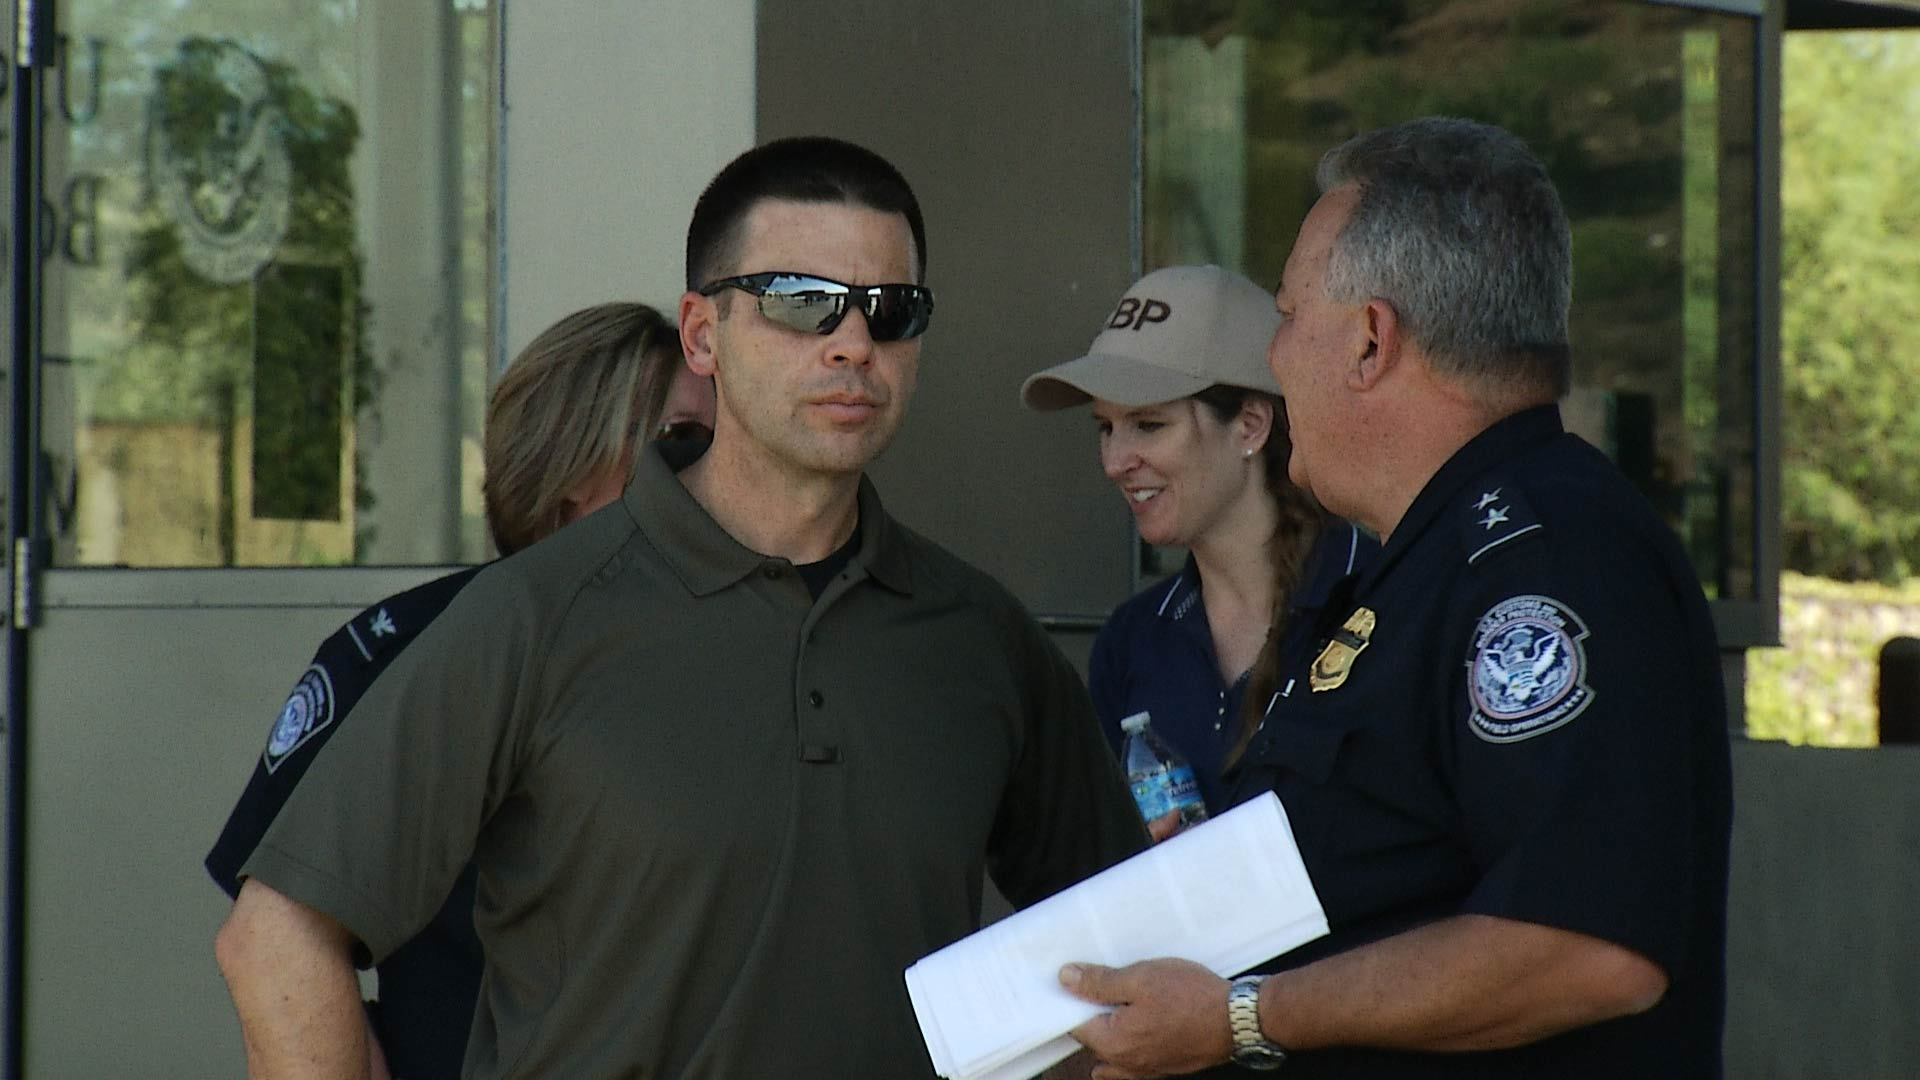 Customs and Border Protection Commissioner Kevin McAleenan (left) meets with Customs officials at the Mariposa Land Port of Entry in Nogales on June 27, 2018.